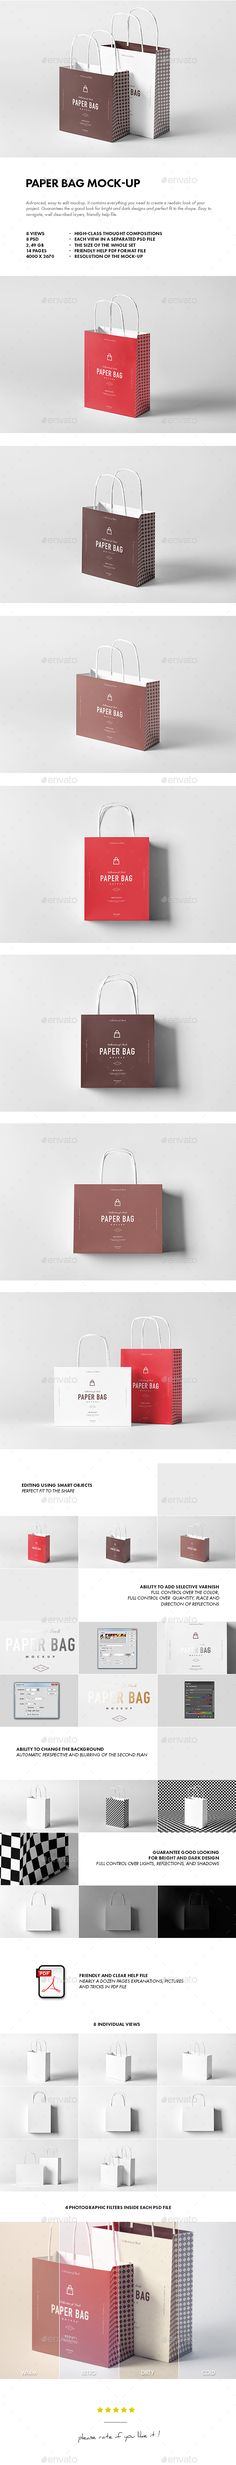 Paper Bag Mock-up by yogurt86 PAPER BAG MOCK-UP Advanced, easy to edit mockup. It contains everything you need to create a realistic look of your project. Guar